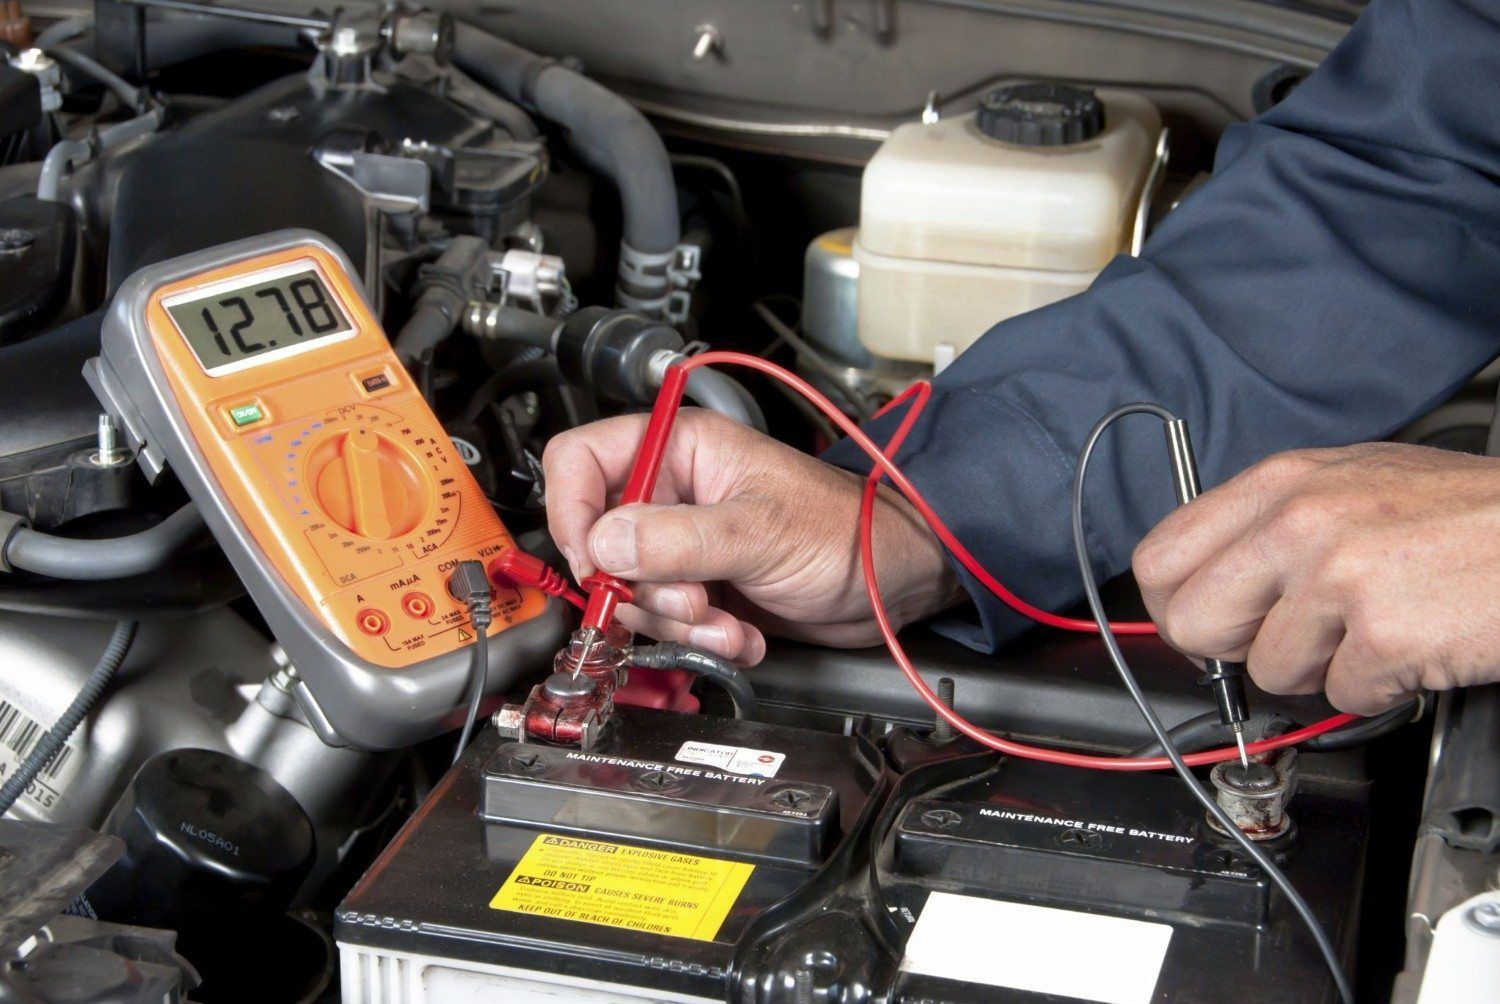 Parts Needed To Allow Tow Vehicle Battery To Charge Trailer Battery While Driving Towing Mini Van Recreational Vehicles